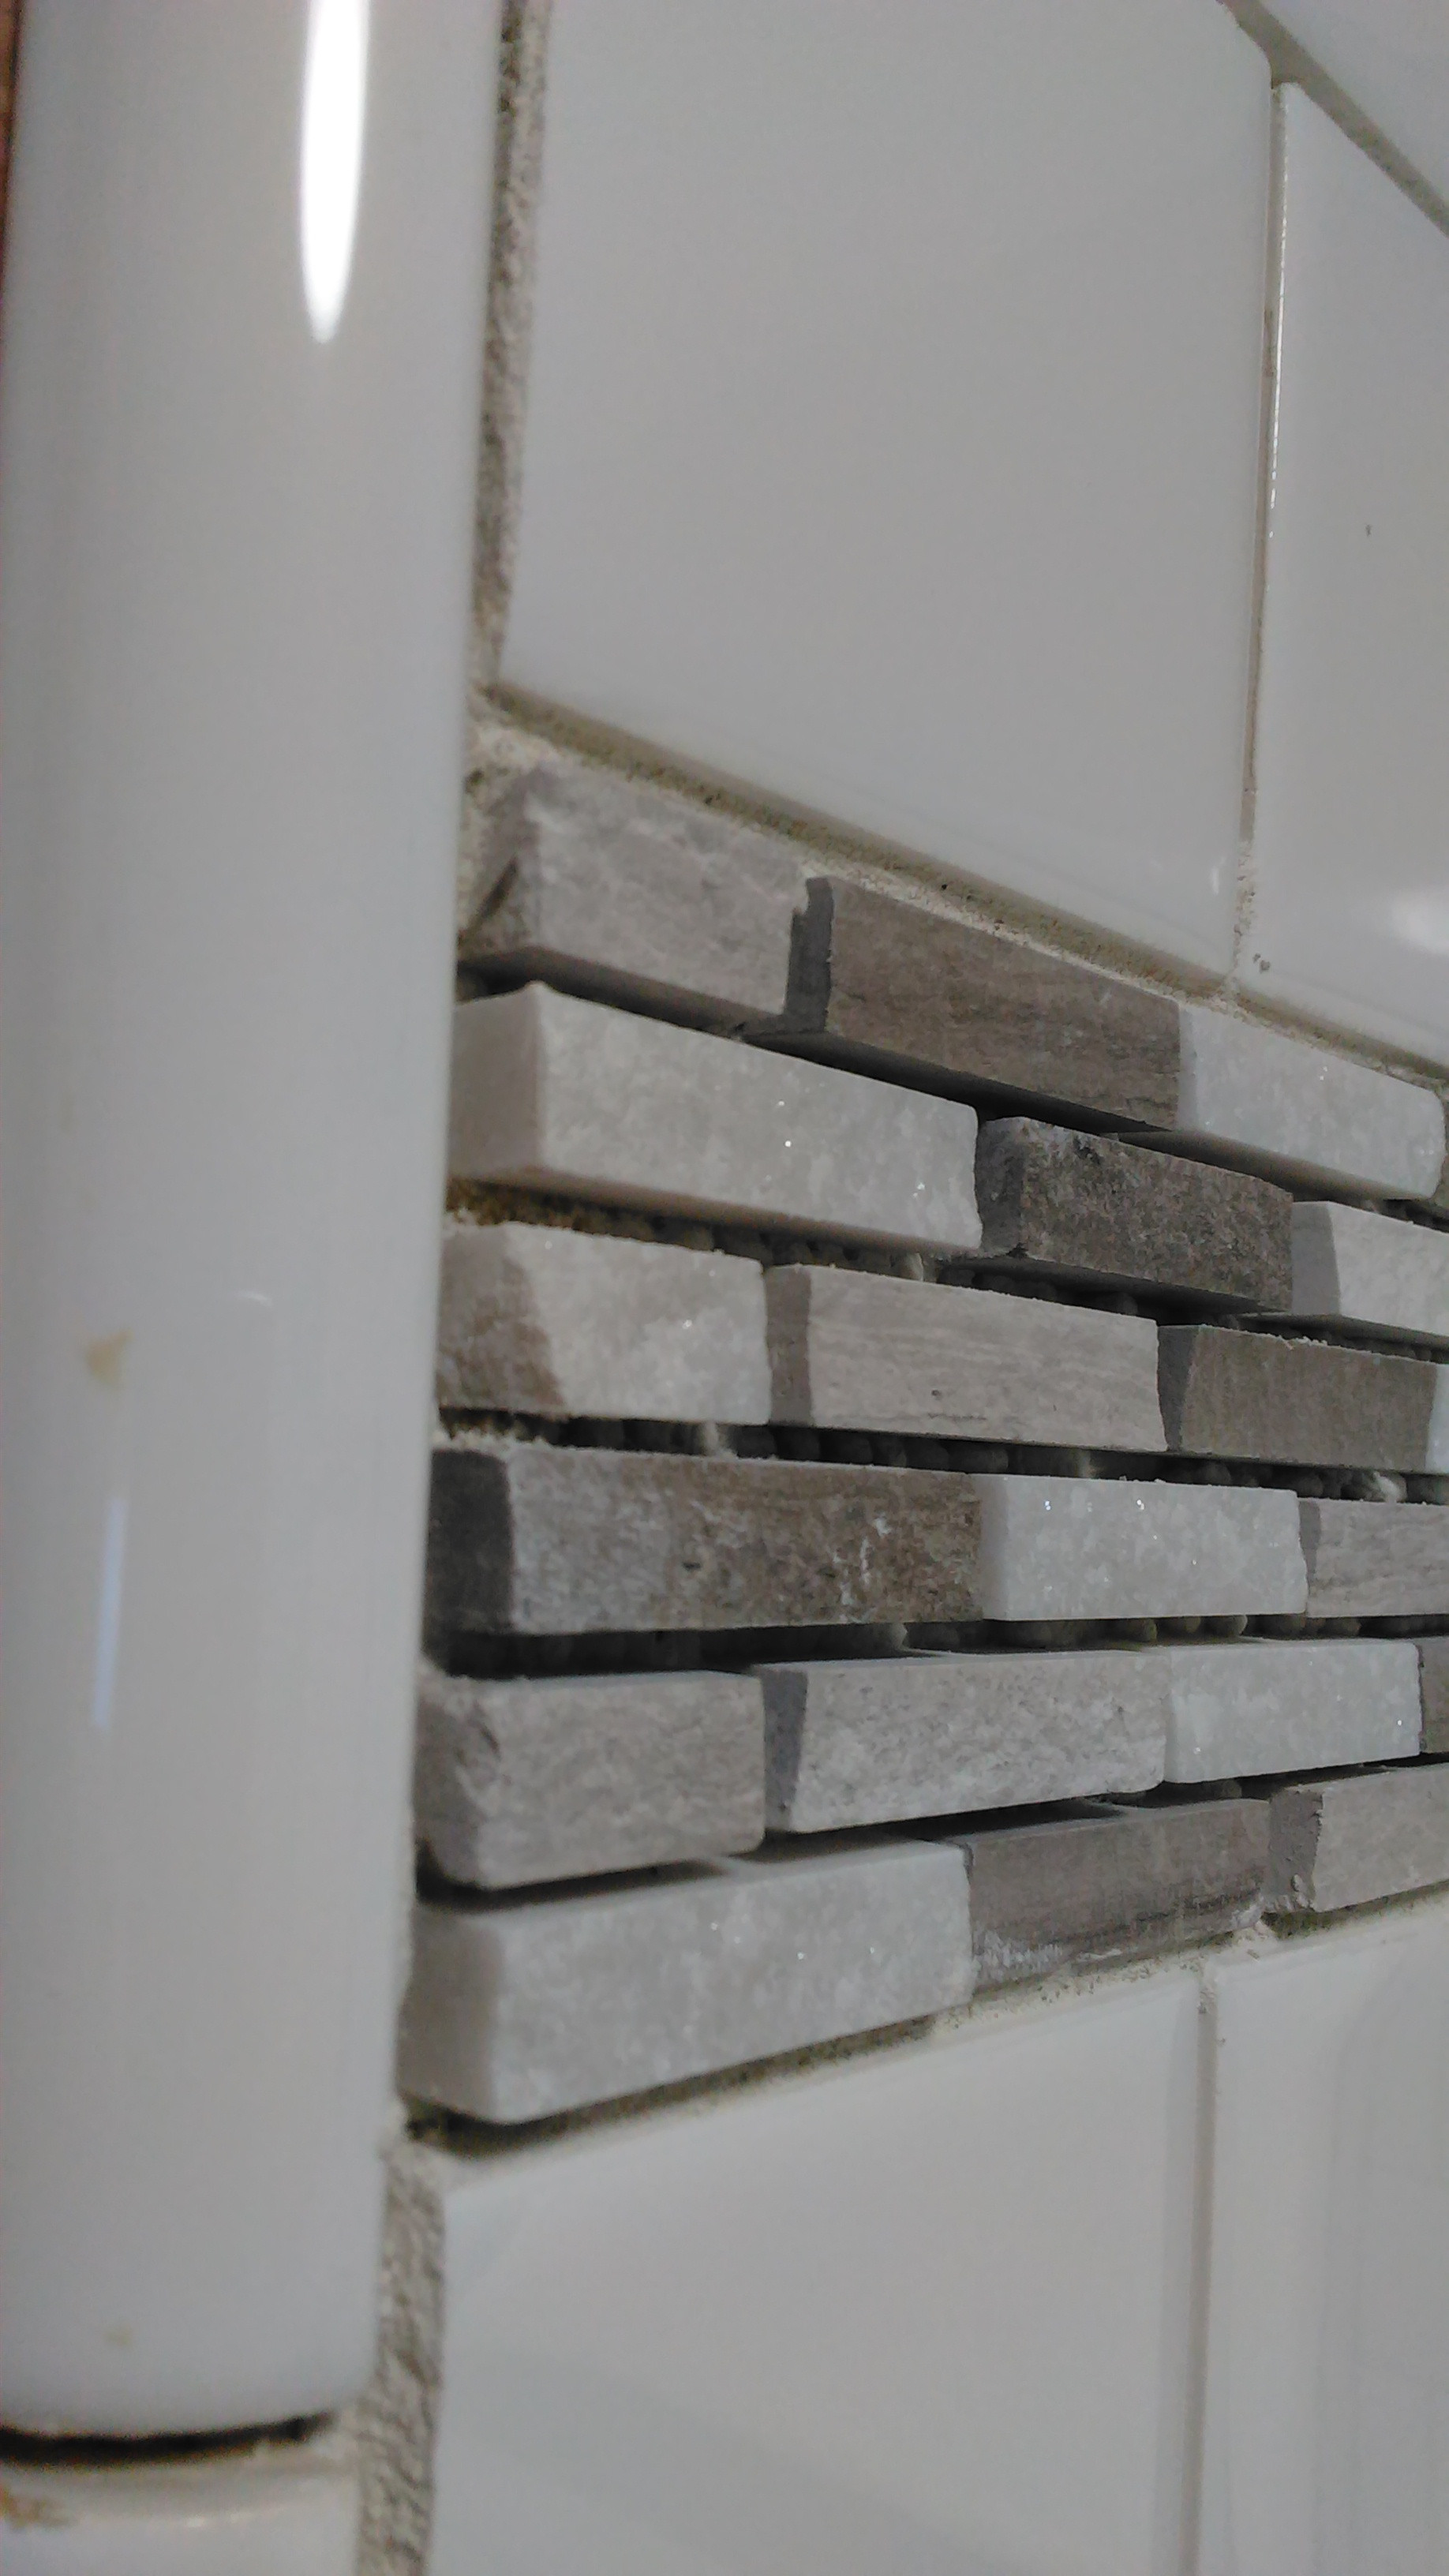 Grout Mosaic Tile Tile What Is The Most Effective Way To Grout Between